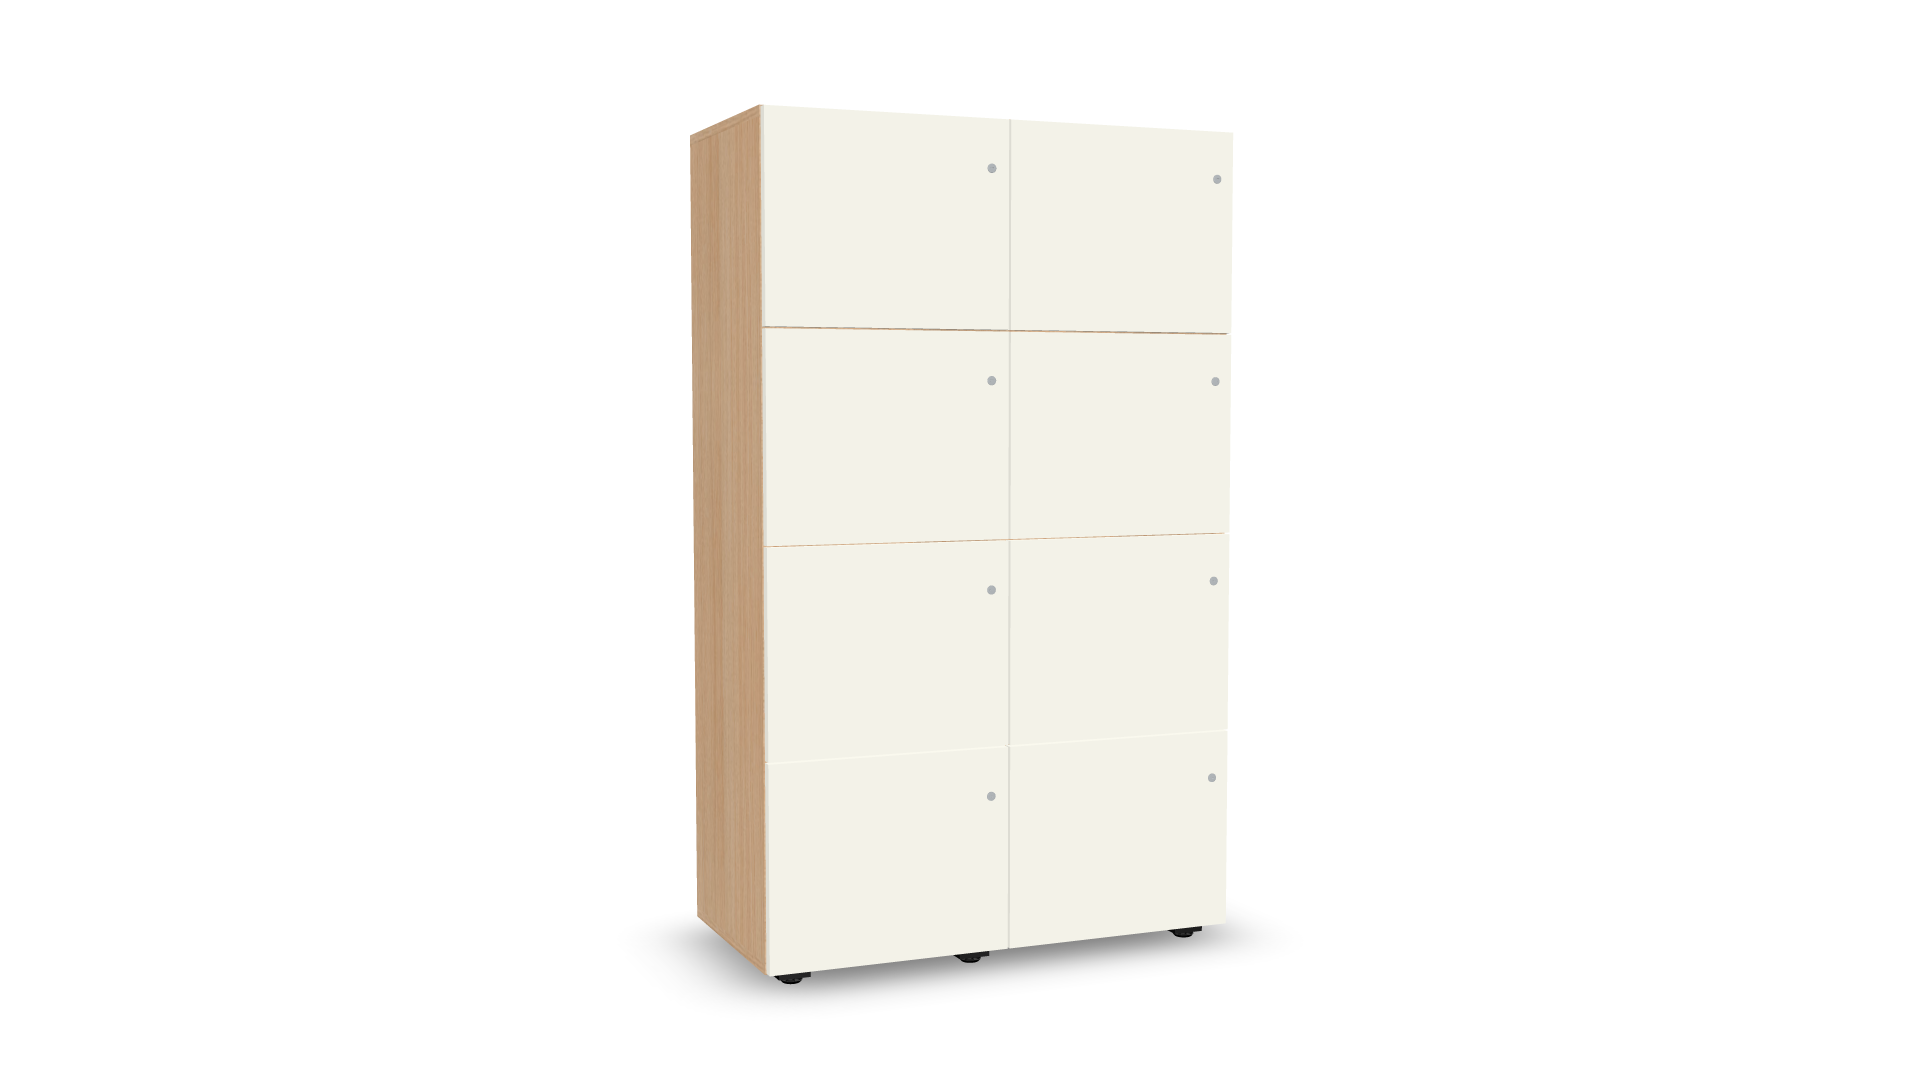 Personal Lockers double-row configurator preview